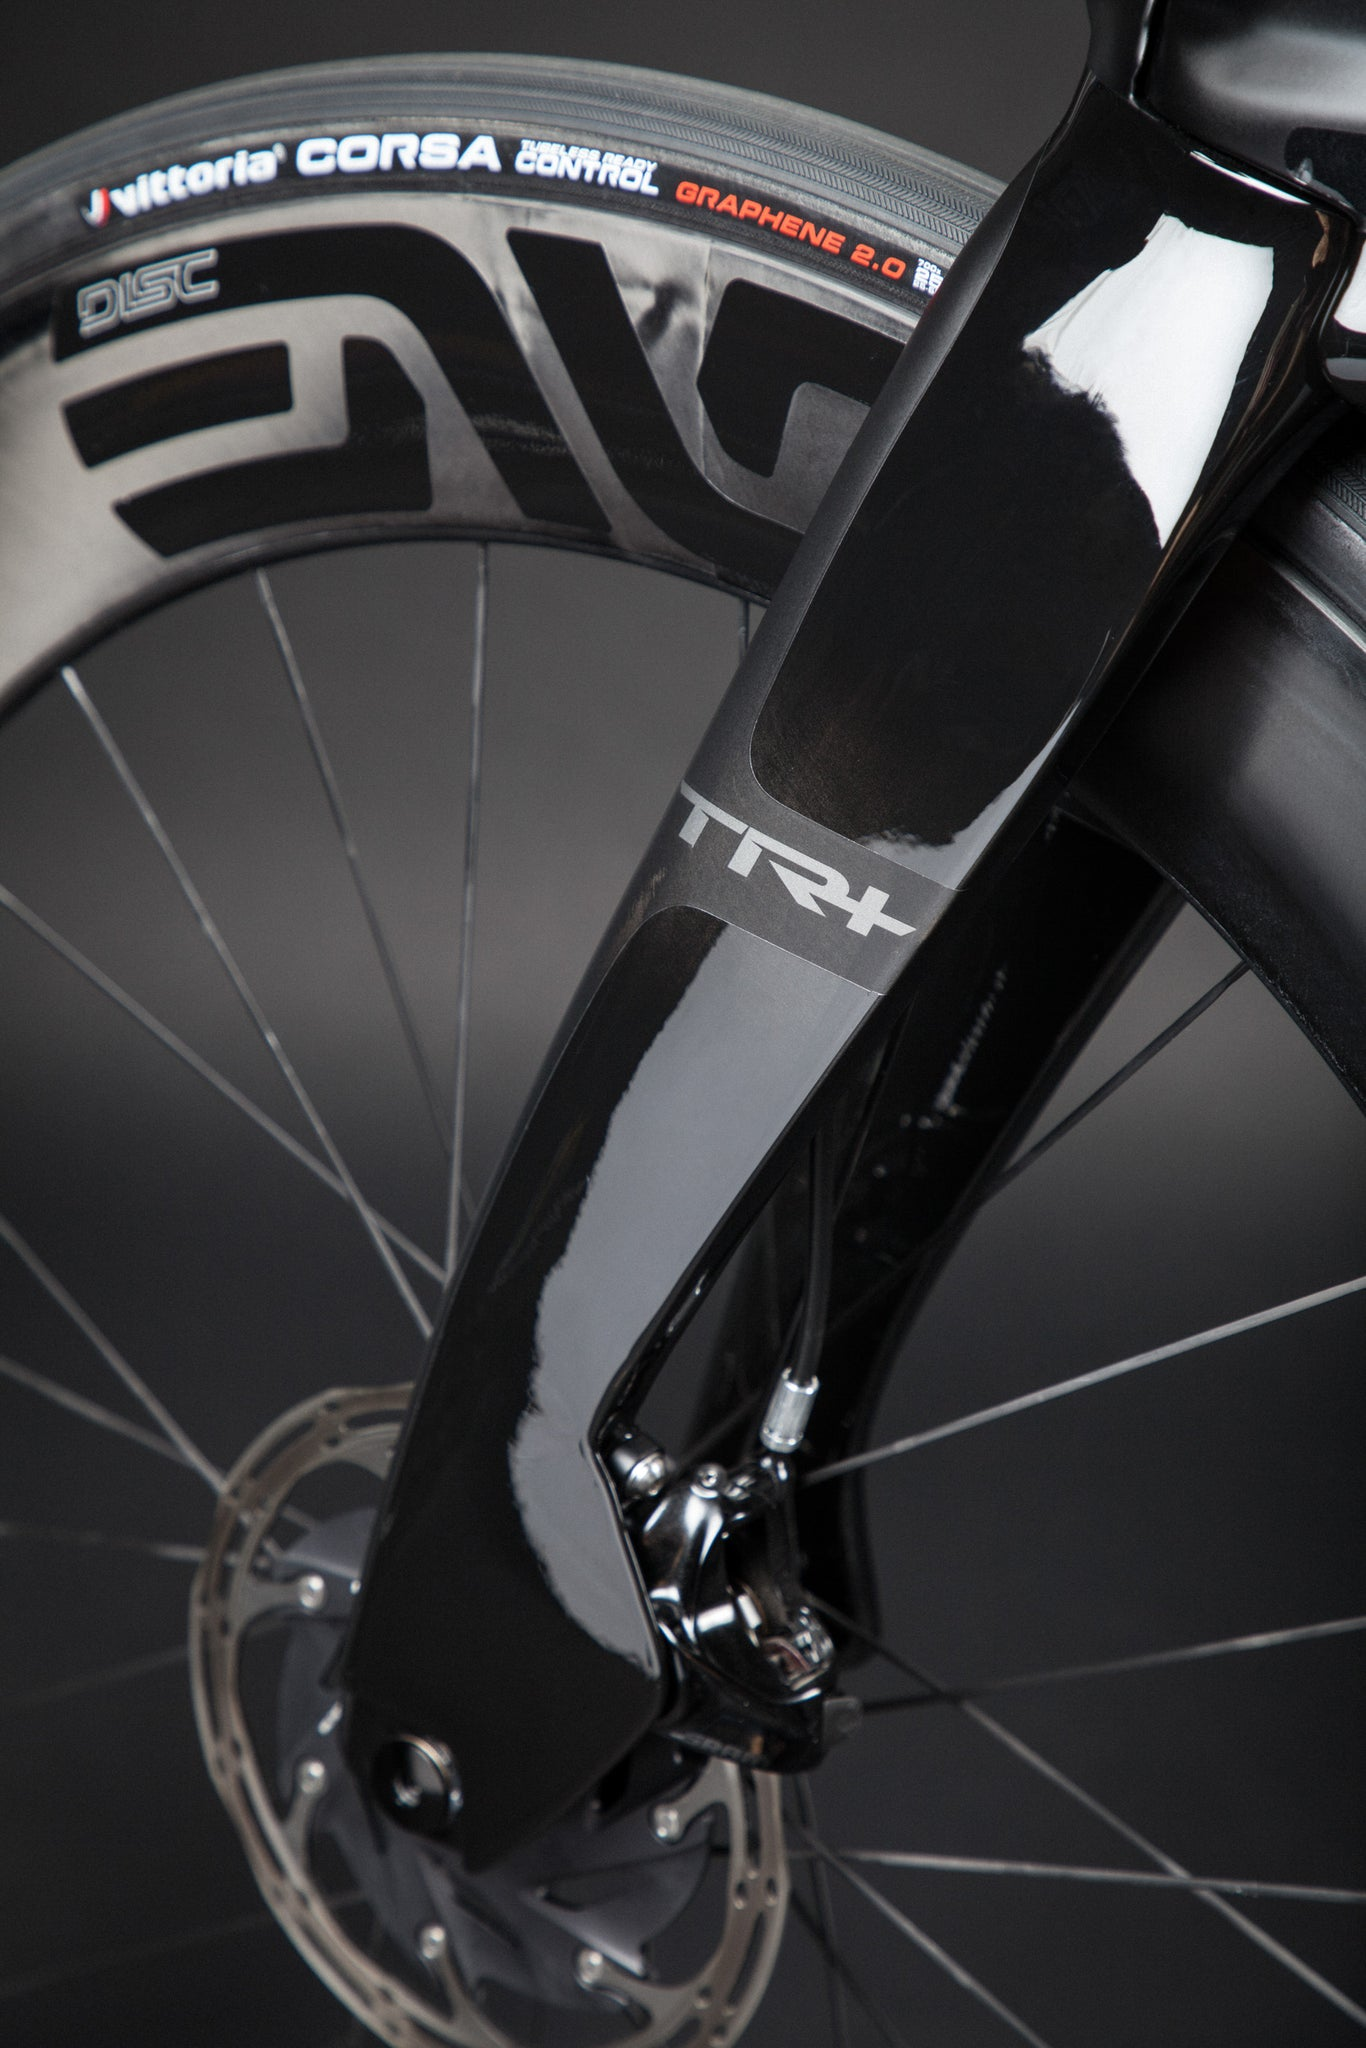 A Blacked Out Pinarello Bolide Gallery TR fork